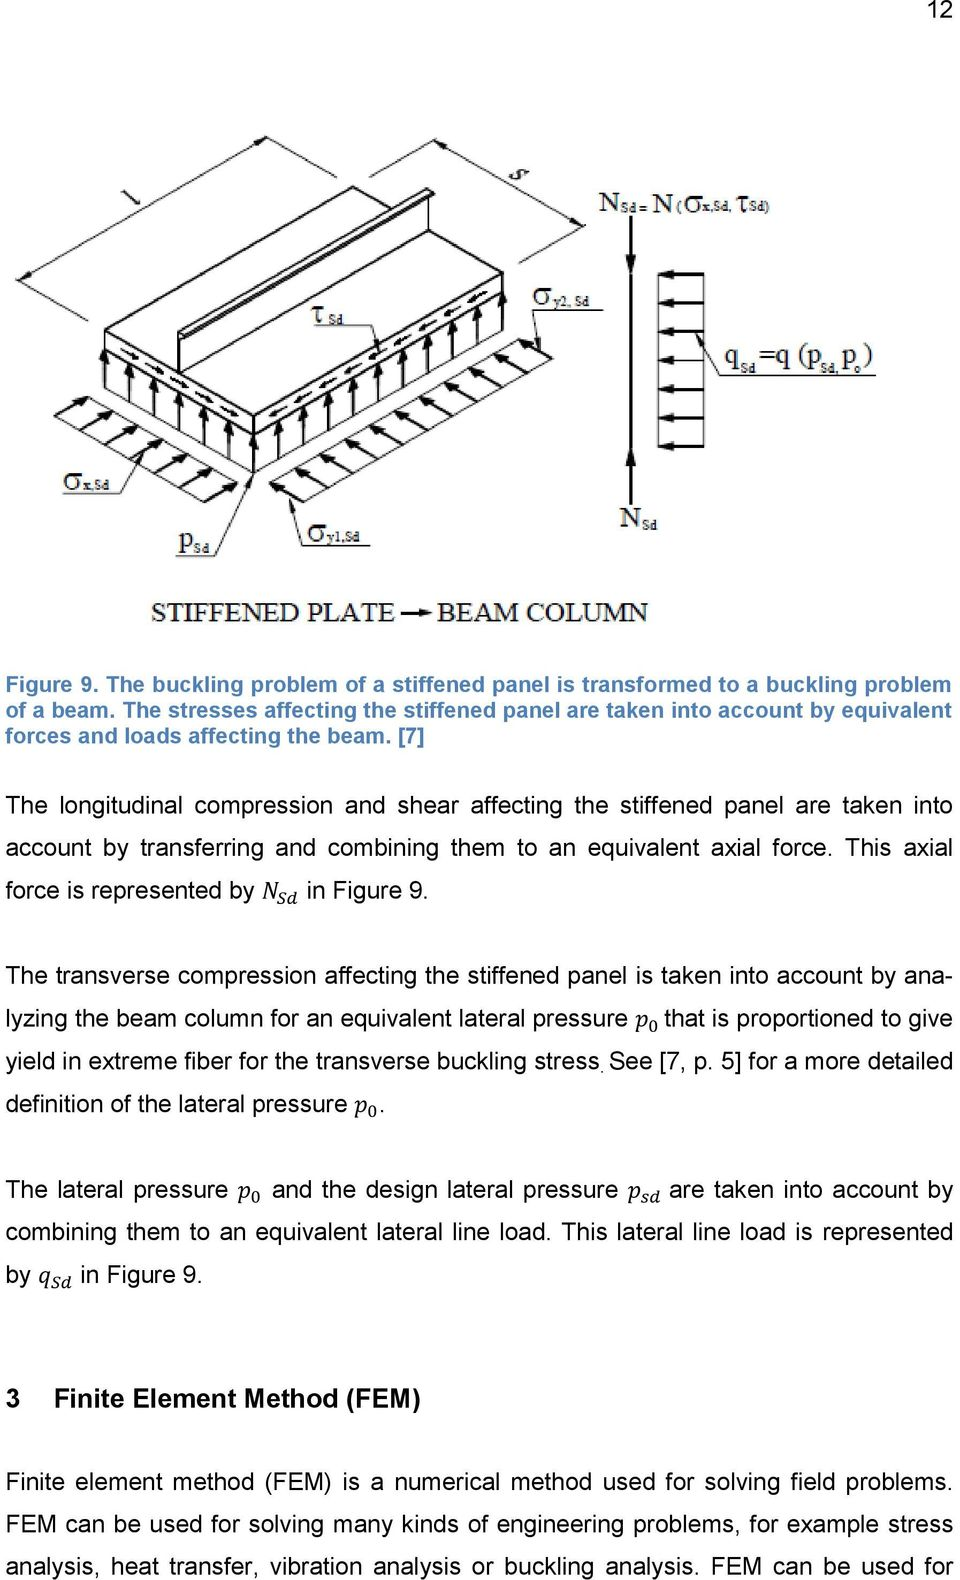 Buckling Check Tools for Plate Panel and Column Structures - PDF